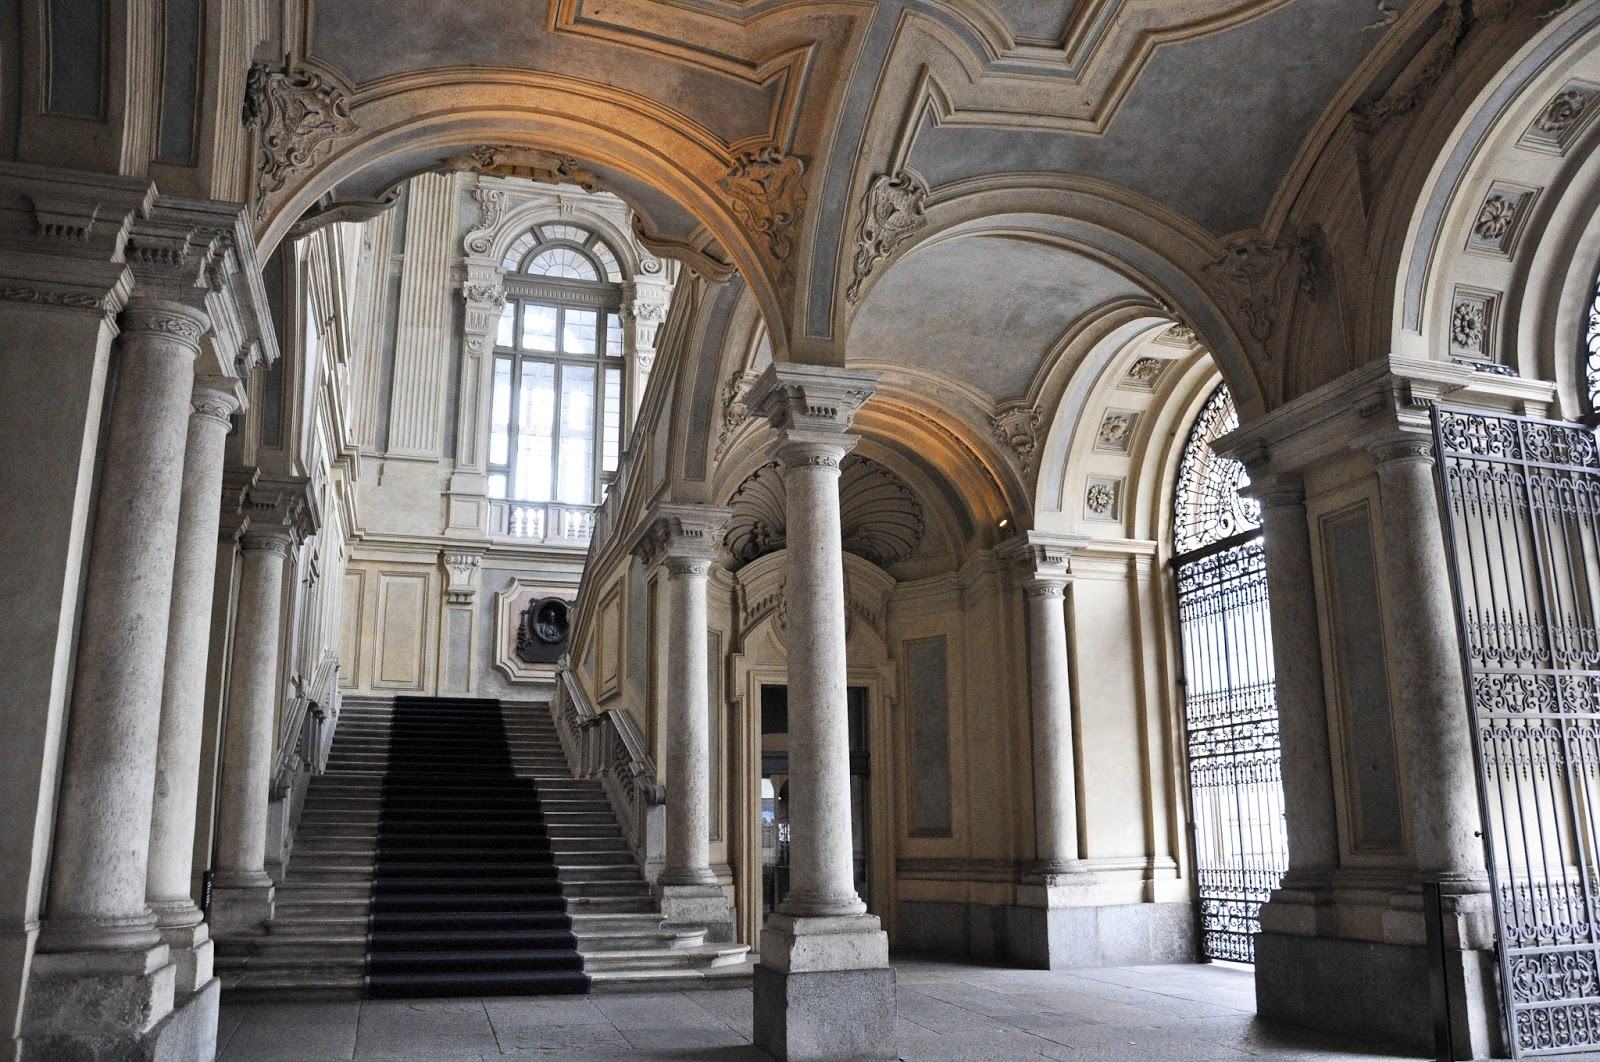 The entrance hall, Palazzo Madama, Turin, Italy